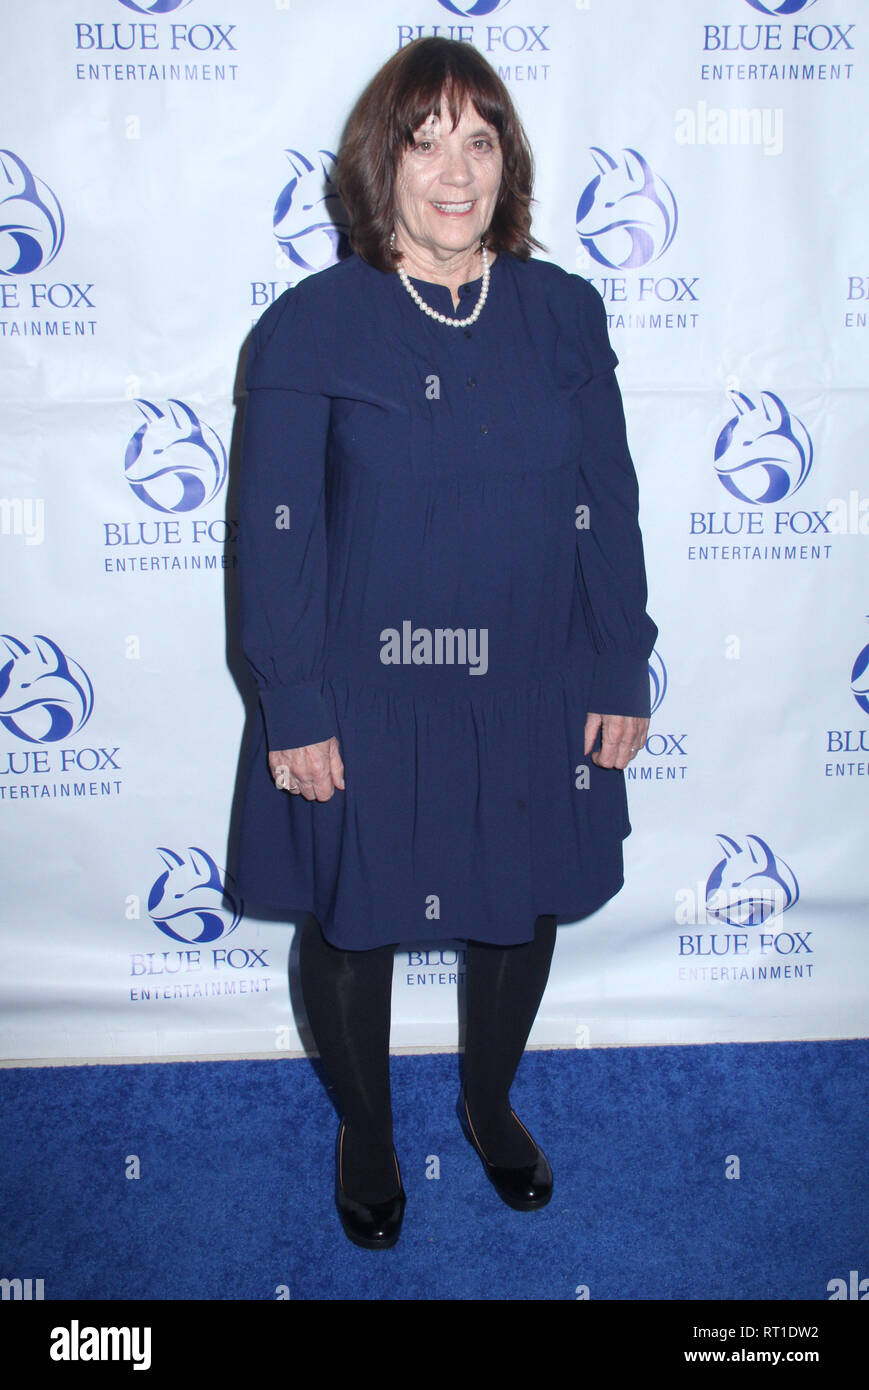 Judy Wood 02/26/2019 The Los Angeles Premiere of